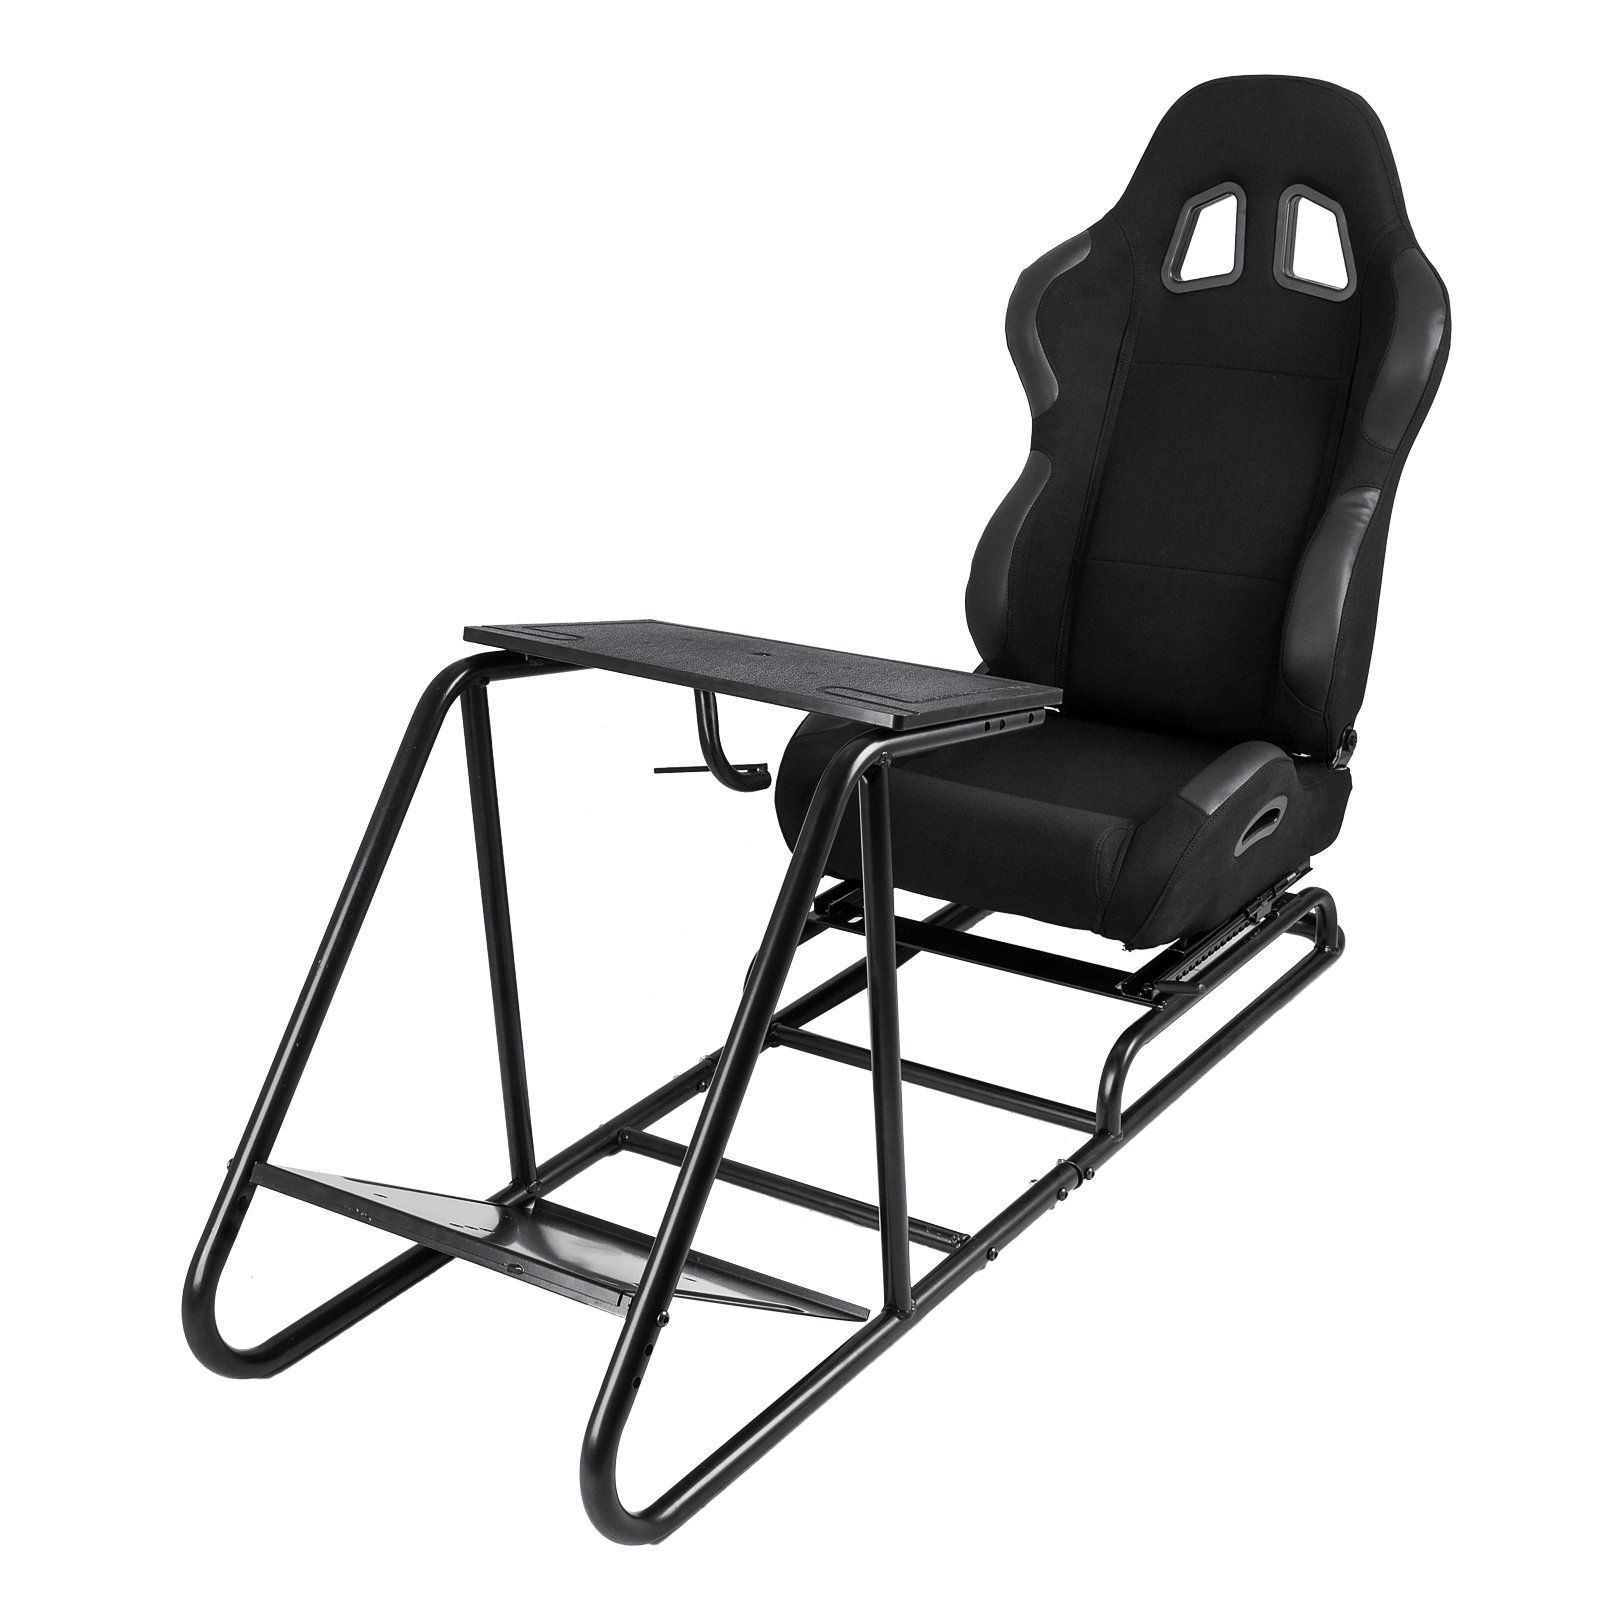 Fine Vevor Driving Simulator Gaming Chair Adjustable And Foldable Andrewgaddart Wooden Chair Designs For Living Room Andrewgaddartcom